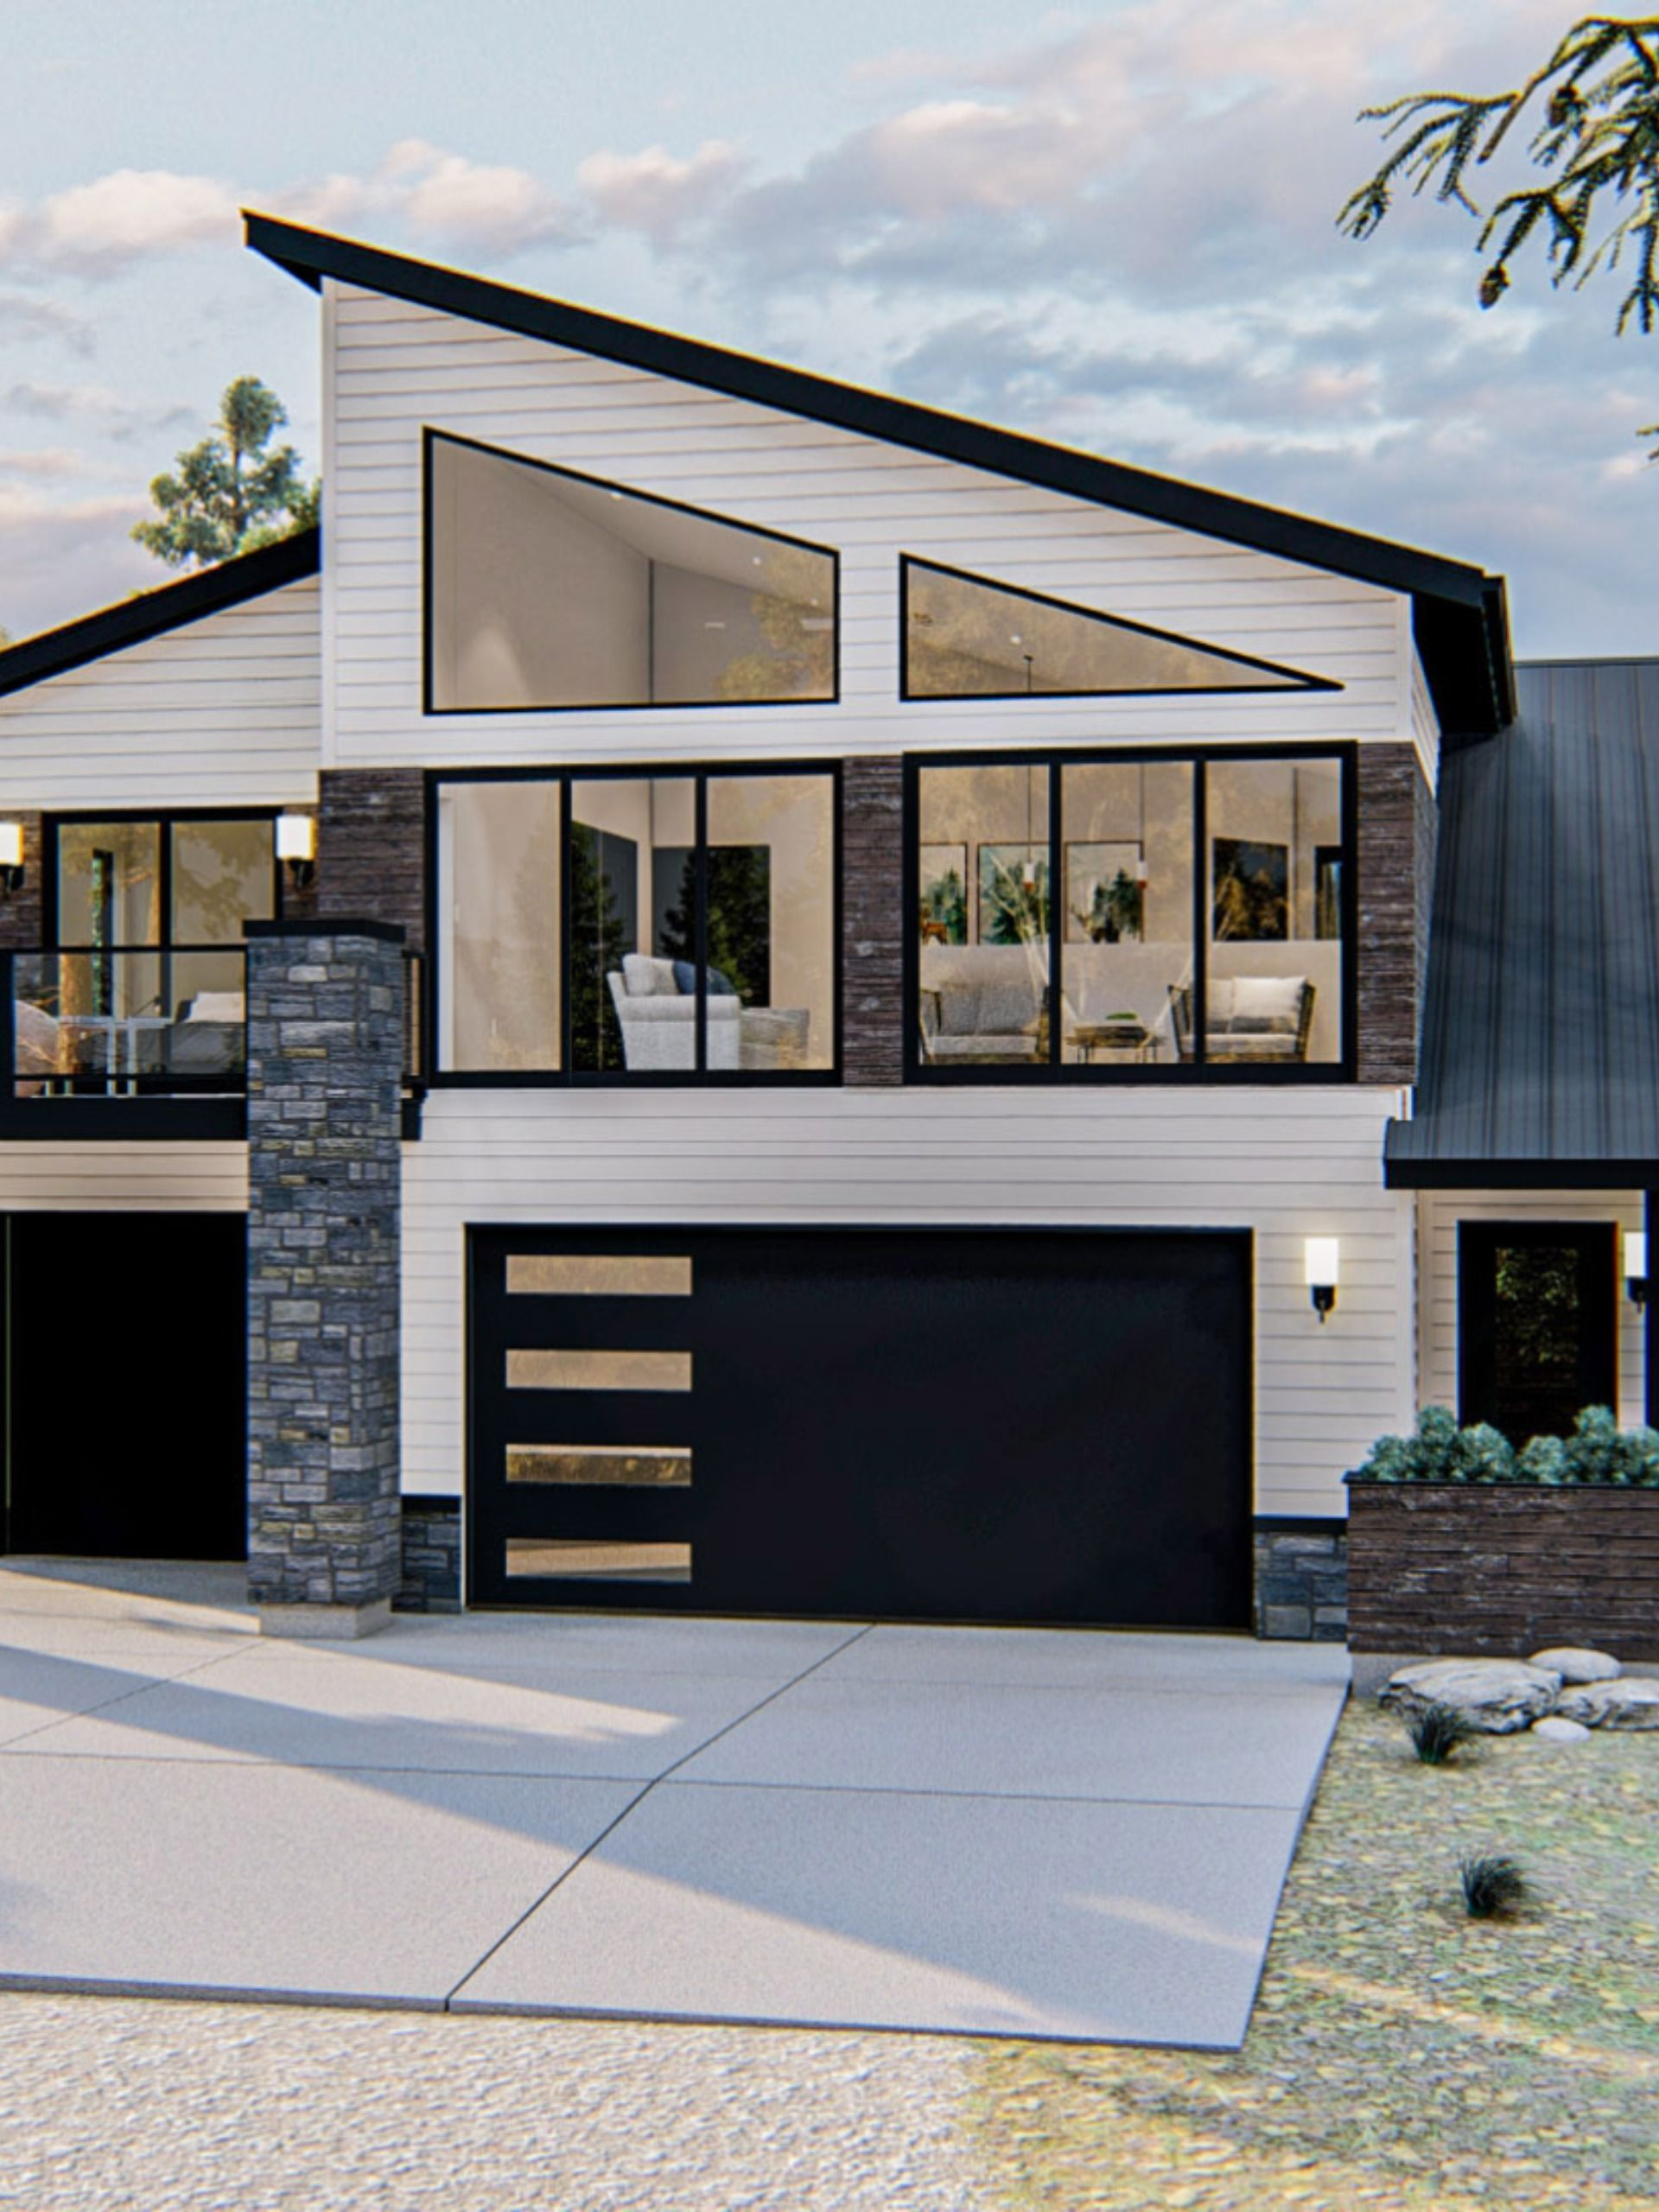 Modern Carriage House Plan Timber Valley In 2020 Carriage House Plans Modern Style House Plans House Plans